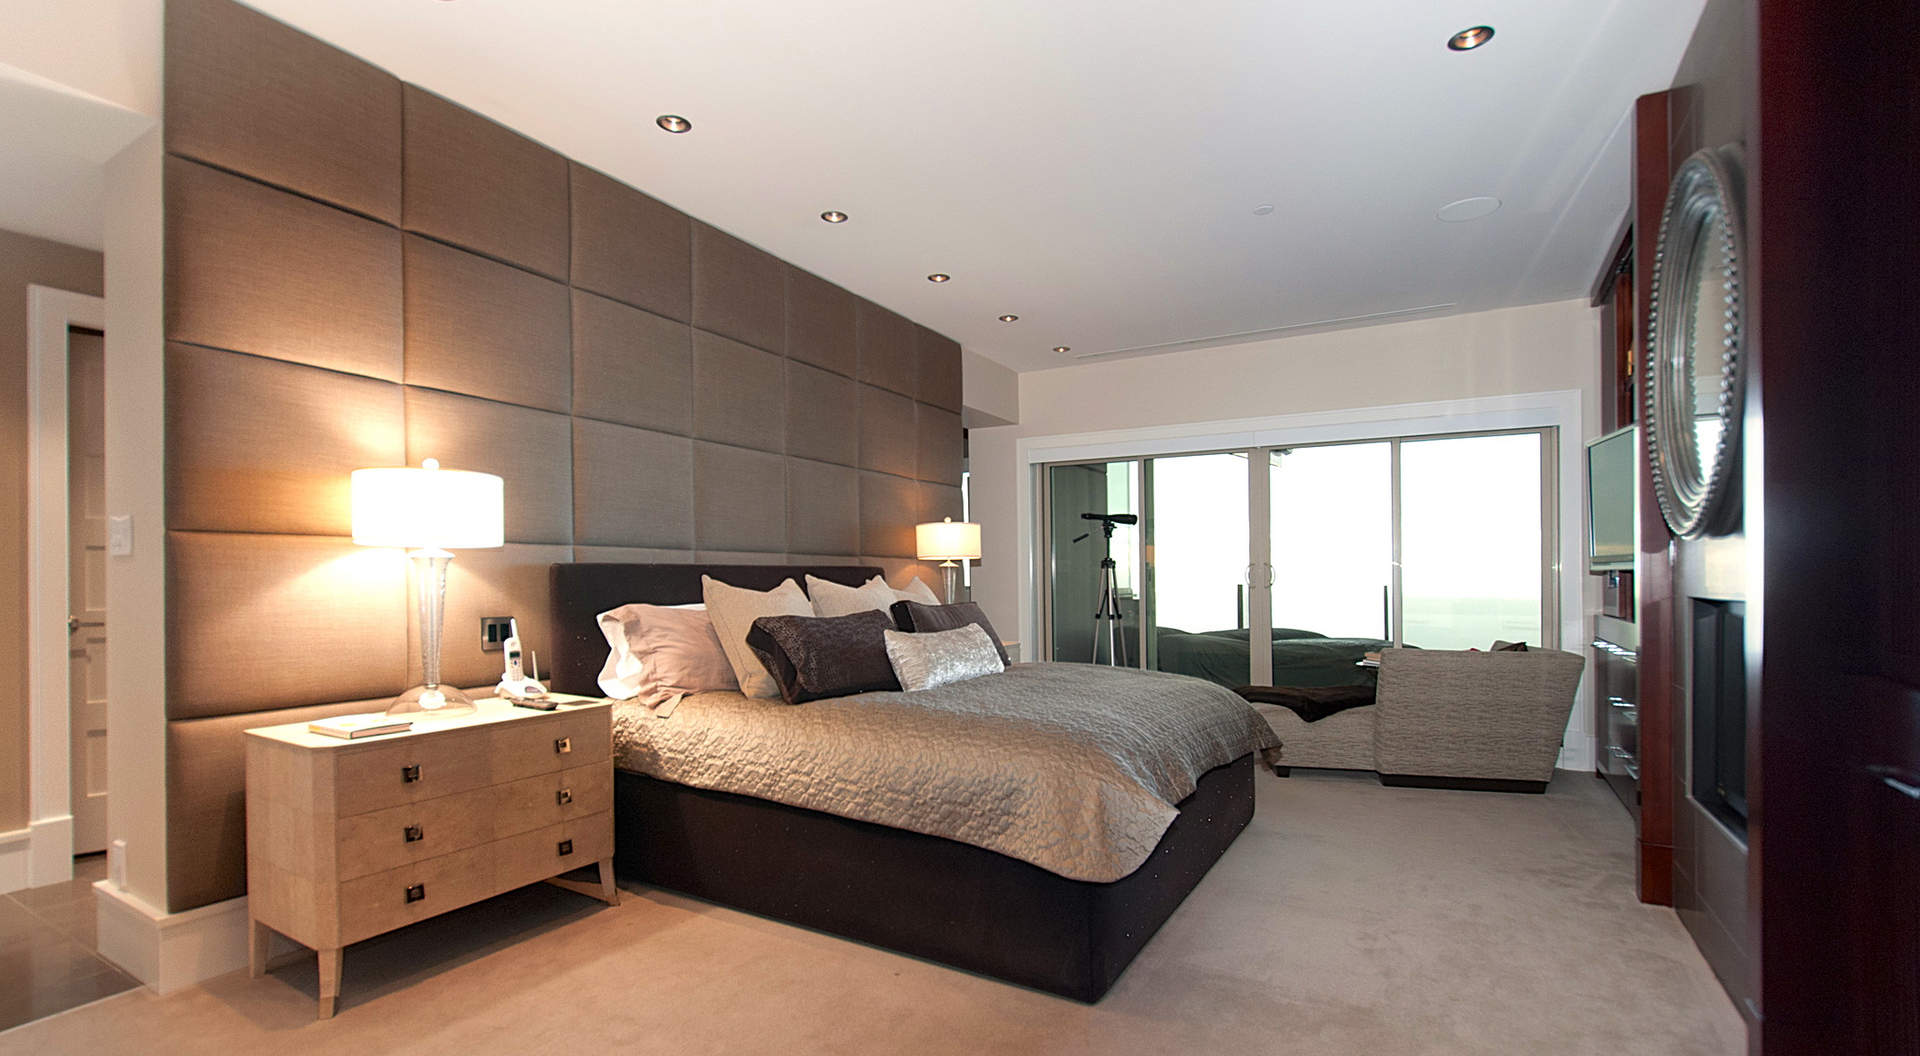 Master bedroom designs ideas - Penthouse Master Bedroom Interior Design Ideas